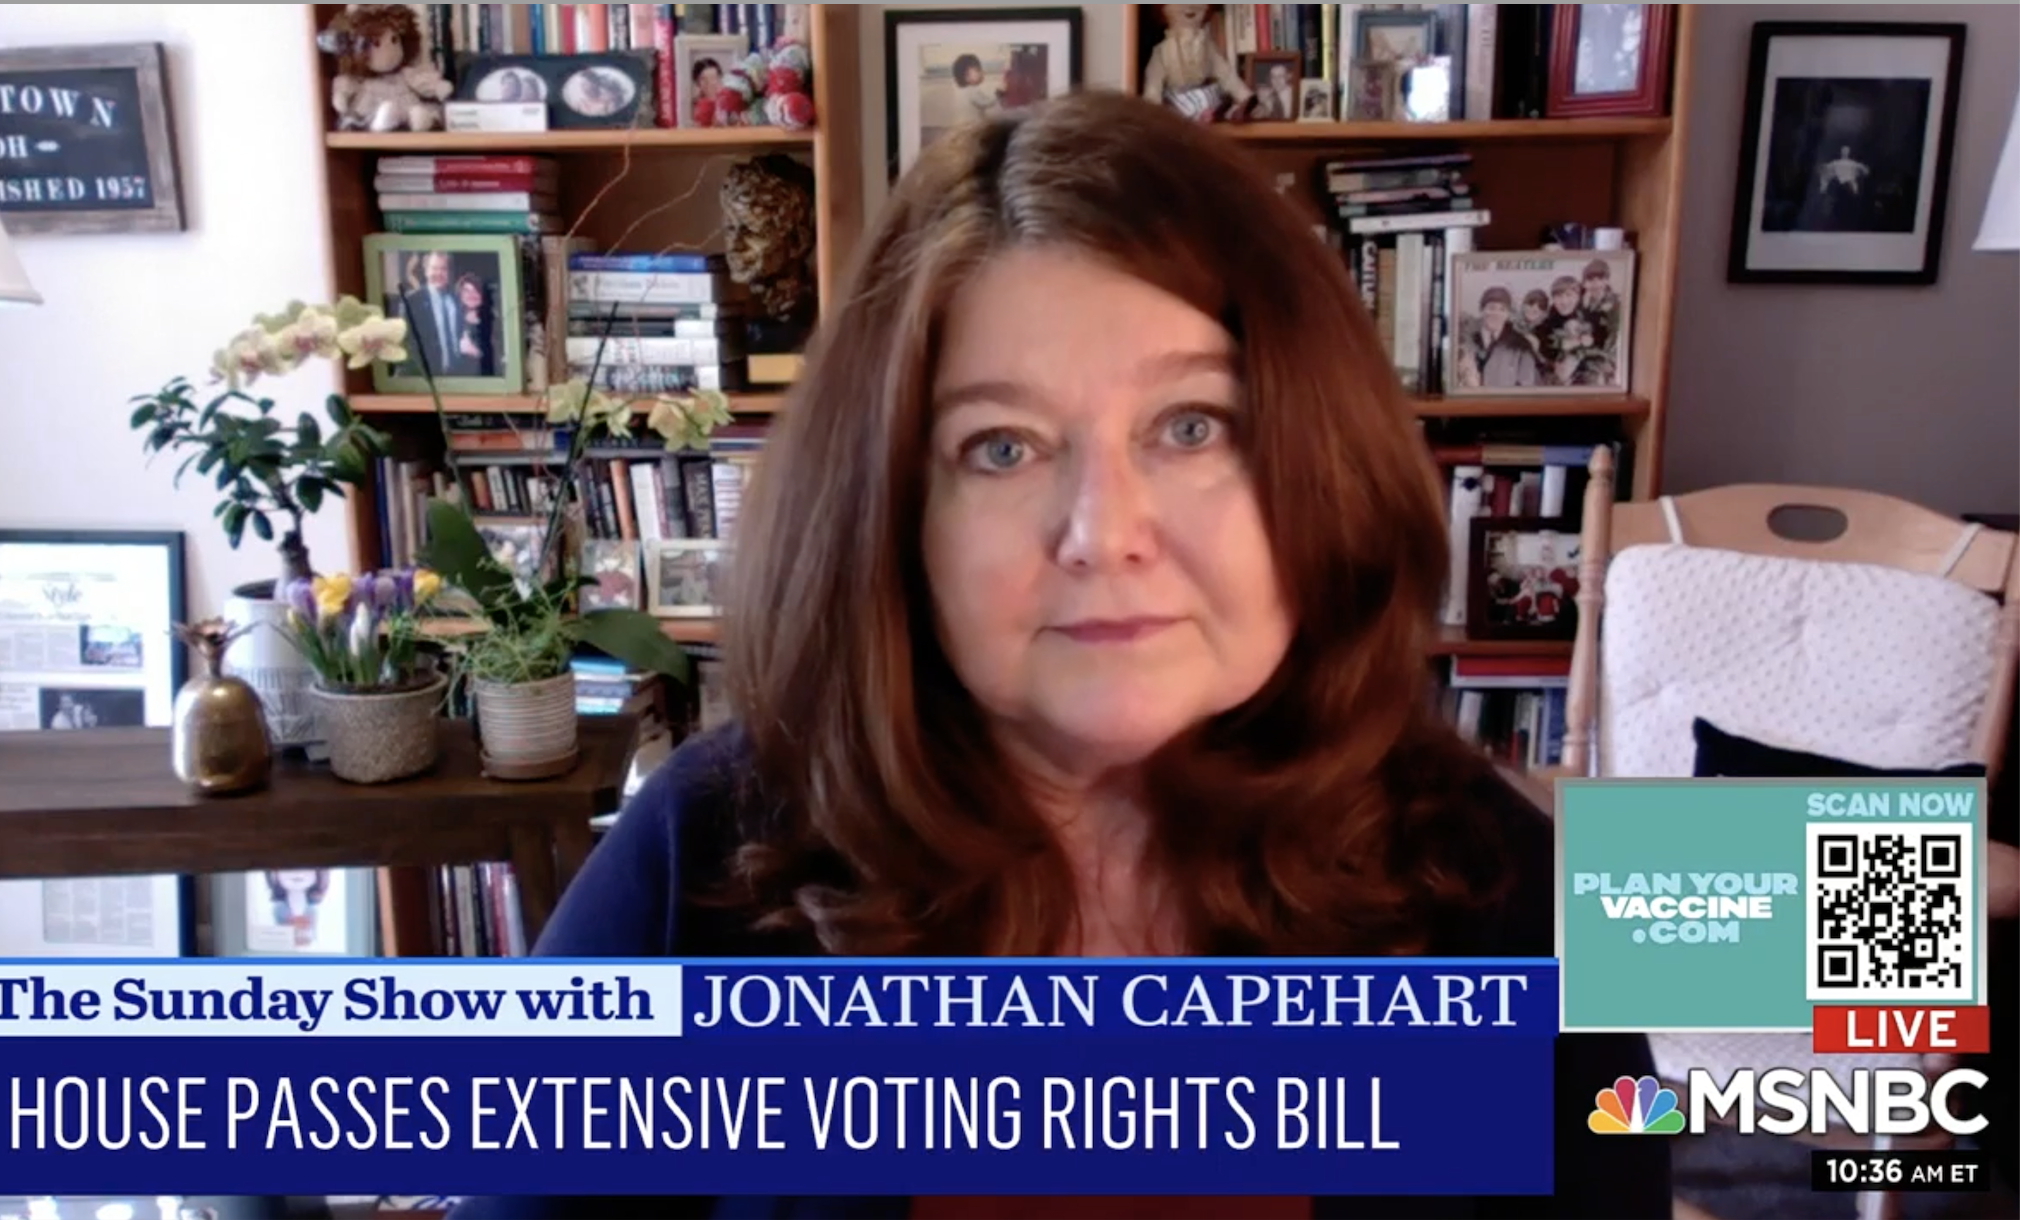 Connie Schultz Warns White People: 'This Fight Is Our Fight For Voting Rights' Too